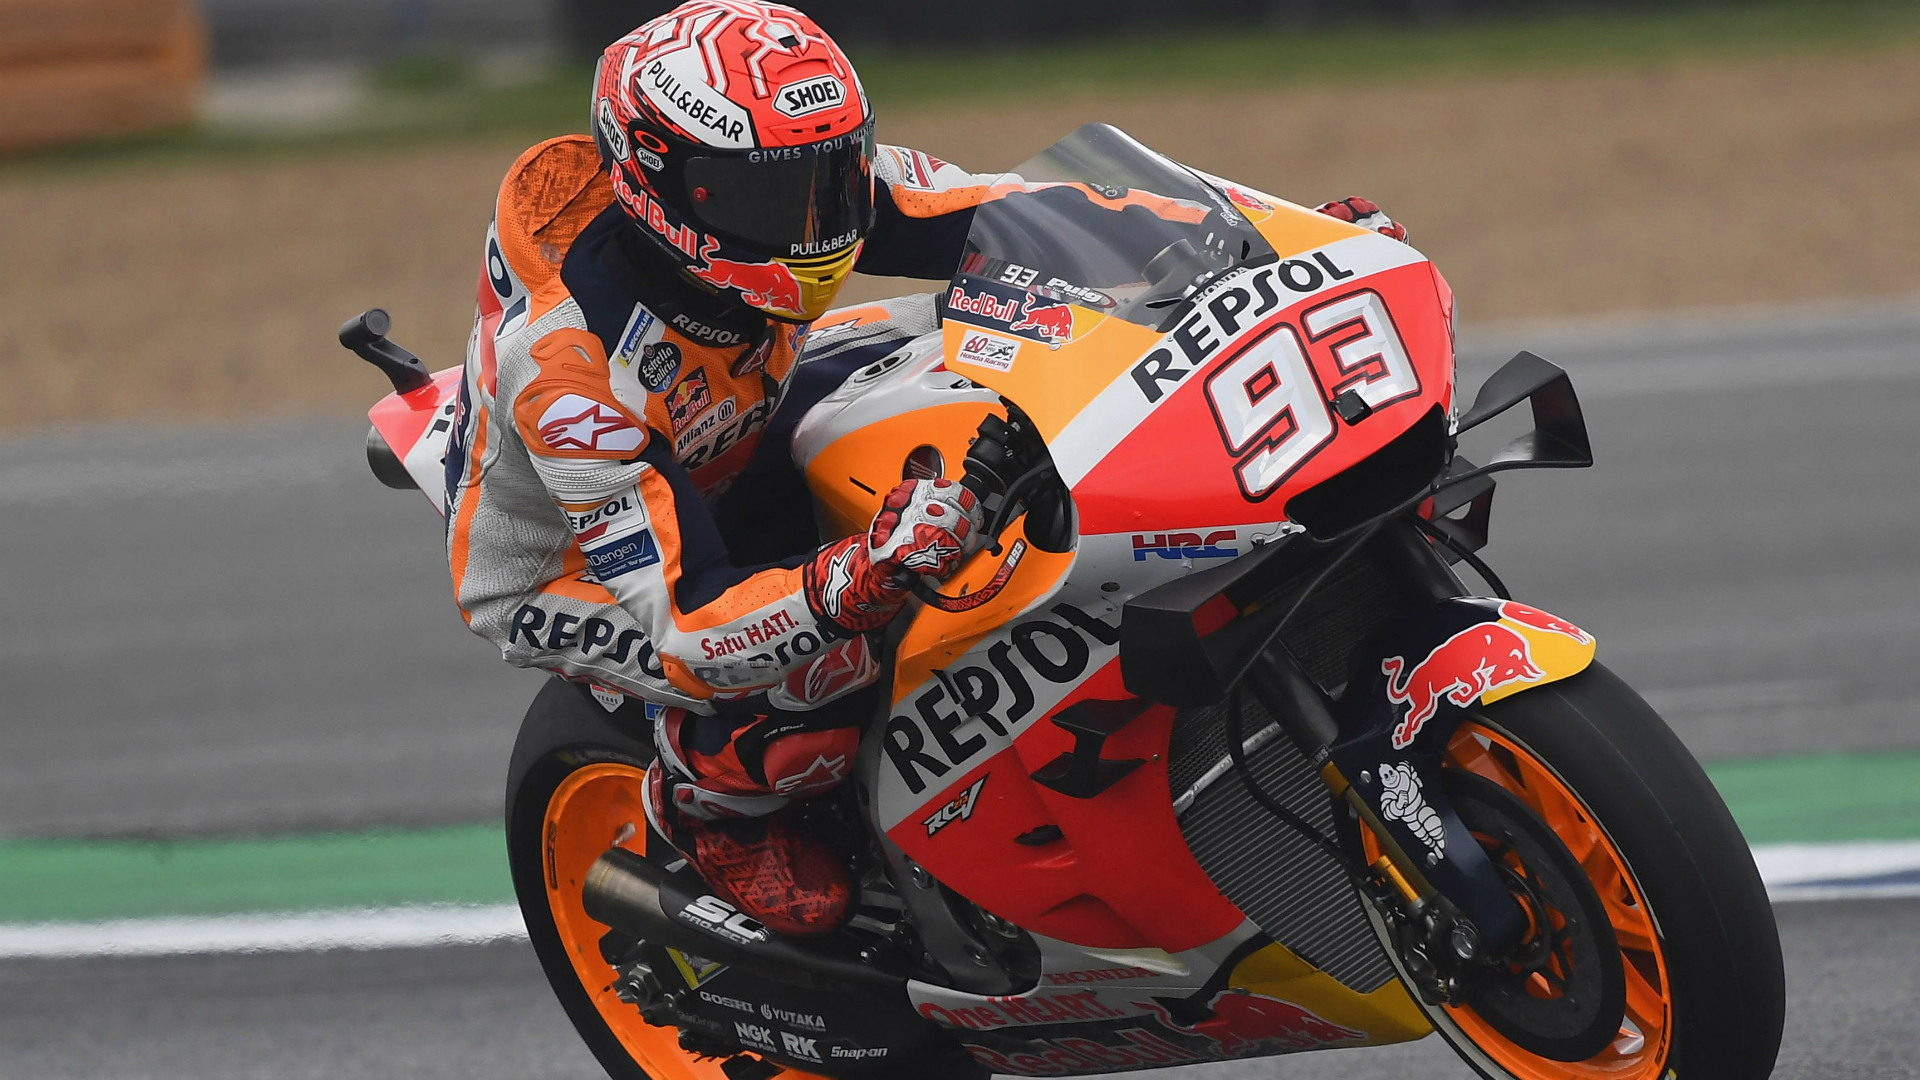 Coronavirus: MotoGP postpones Italian and Catalyuna races